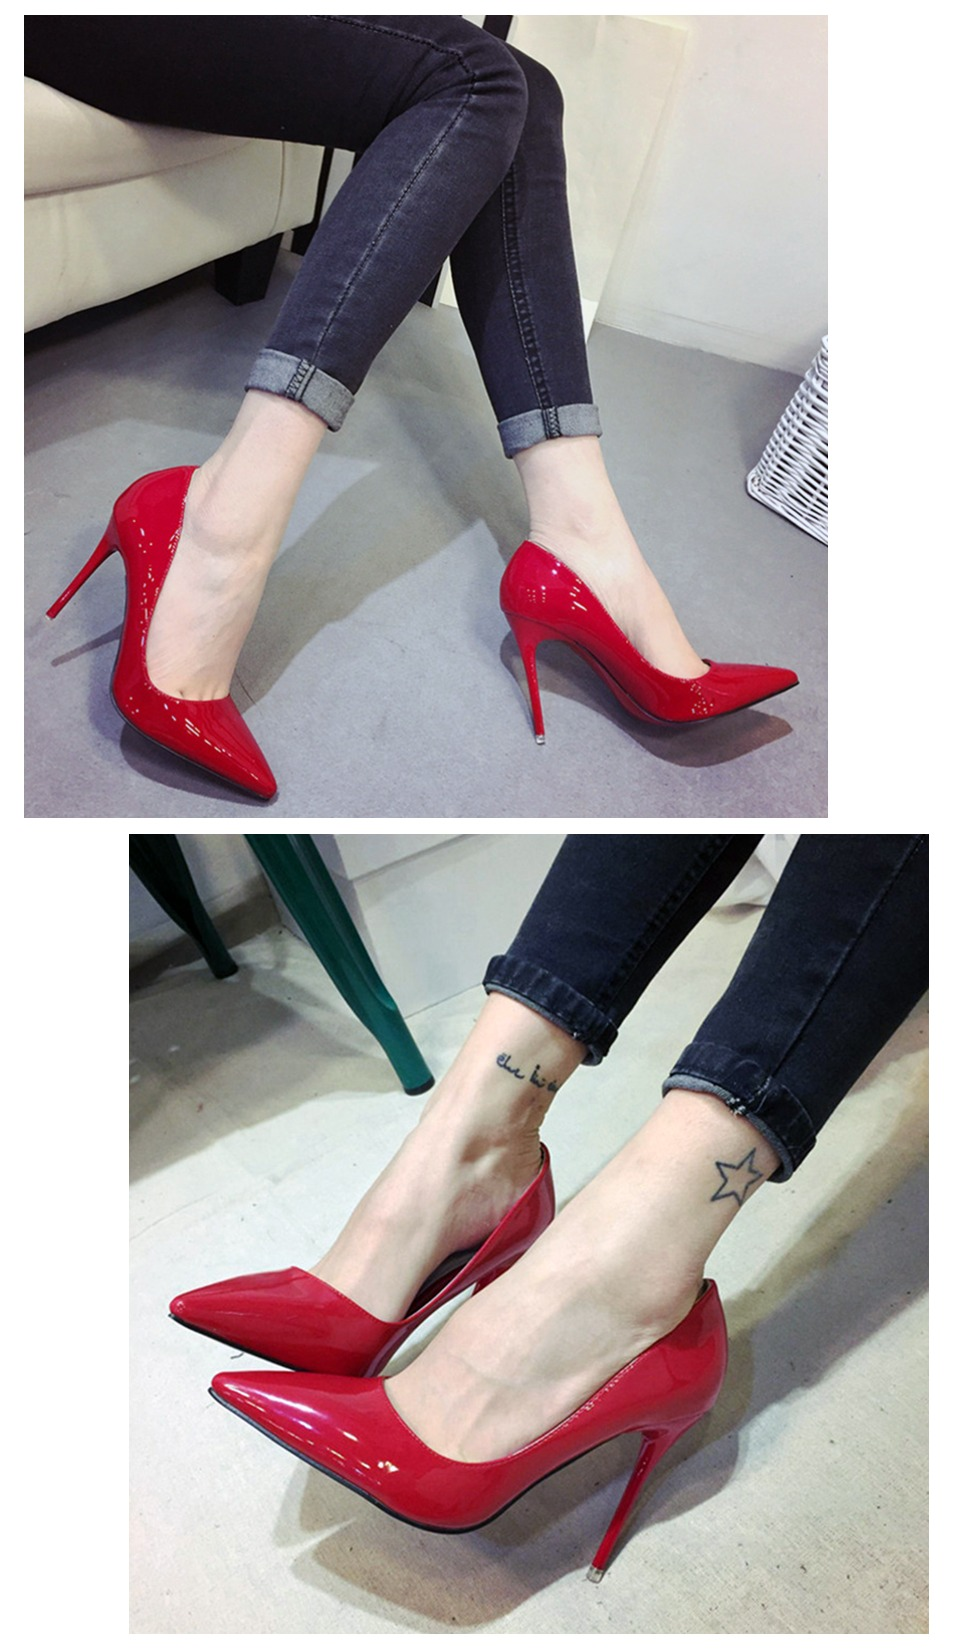 Ladies Shoes High Heels Patent Leather Classic Pumps Sexy Dress Prom Wedding Women PU Pointed Toe Beige Red Bottoms Shoes 8